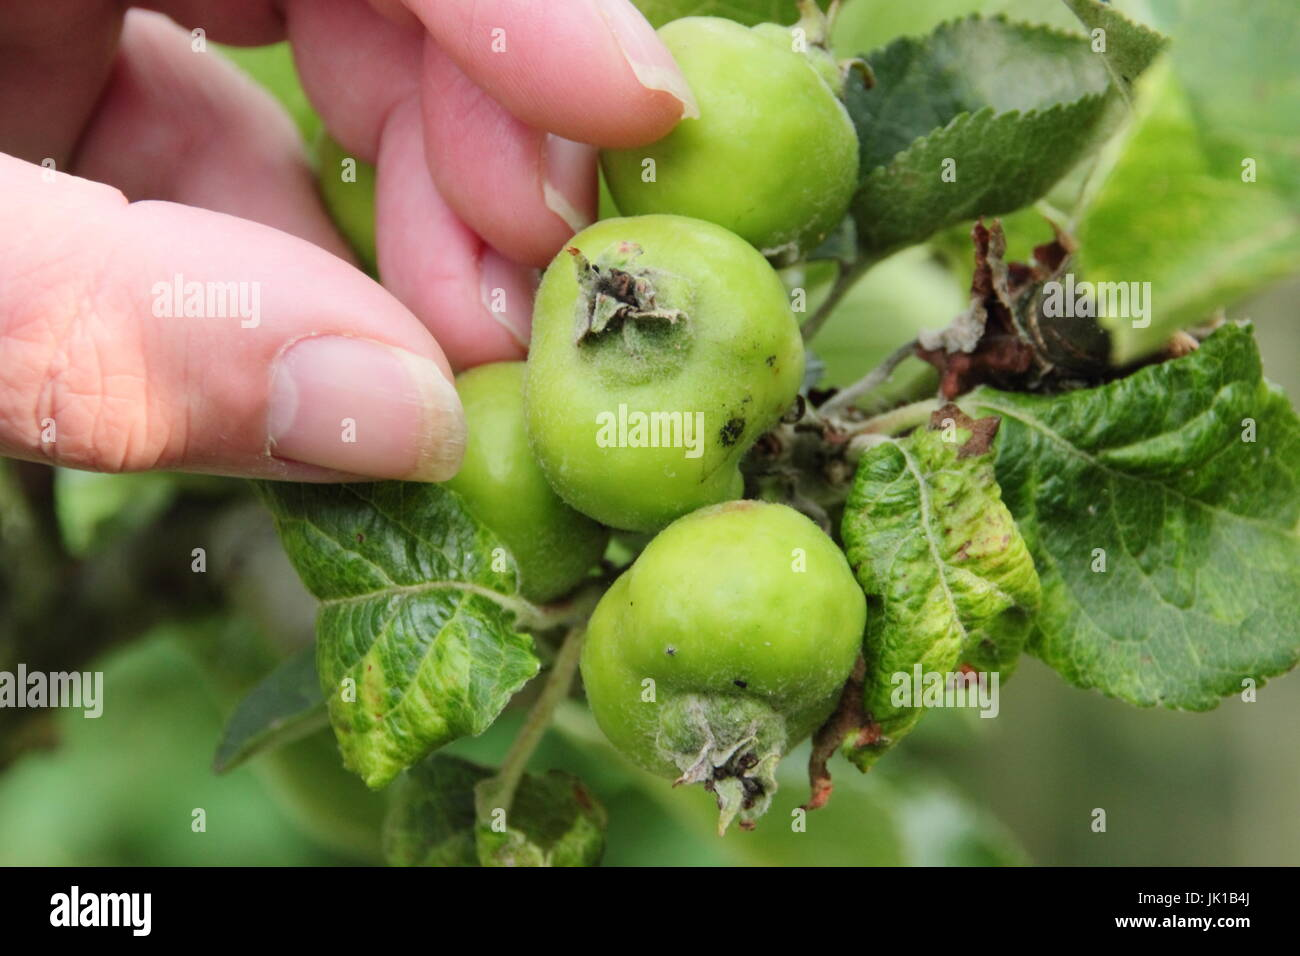 Gardener thinning young Bramley Seedling apples (malus domestica) in summer to encourage good size, healthy fruits, - Stock Image